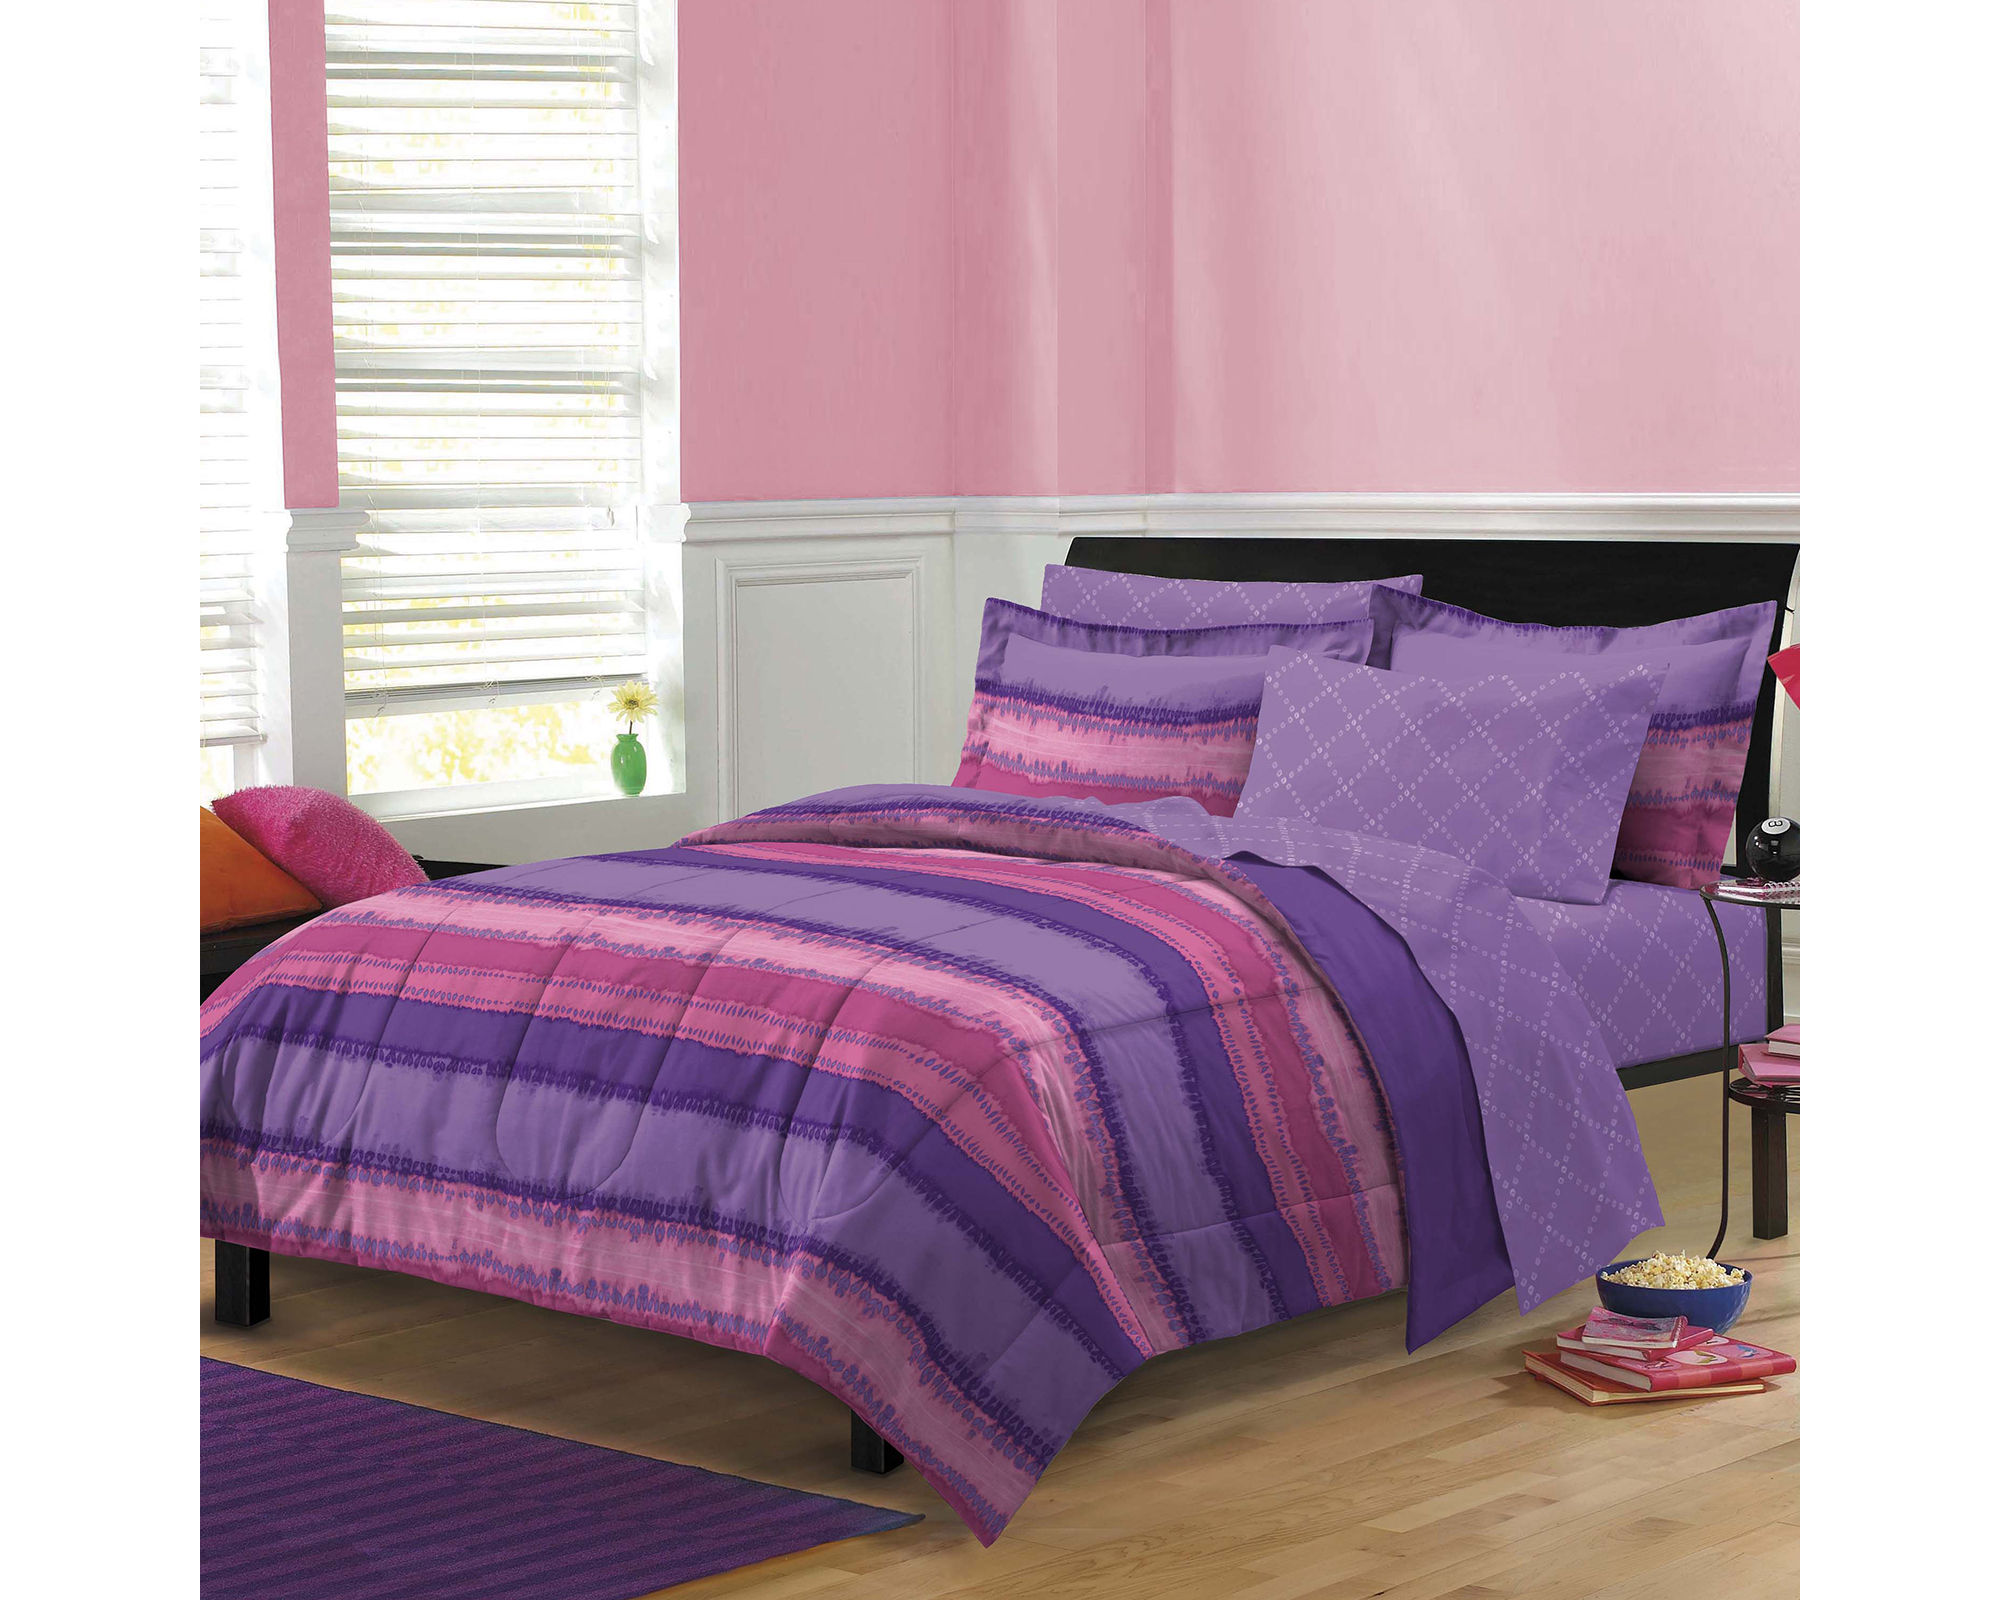 My Room Tie - Dye Complete Bedding Set with Sheets